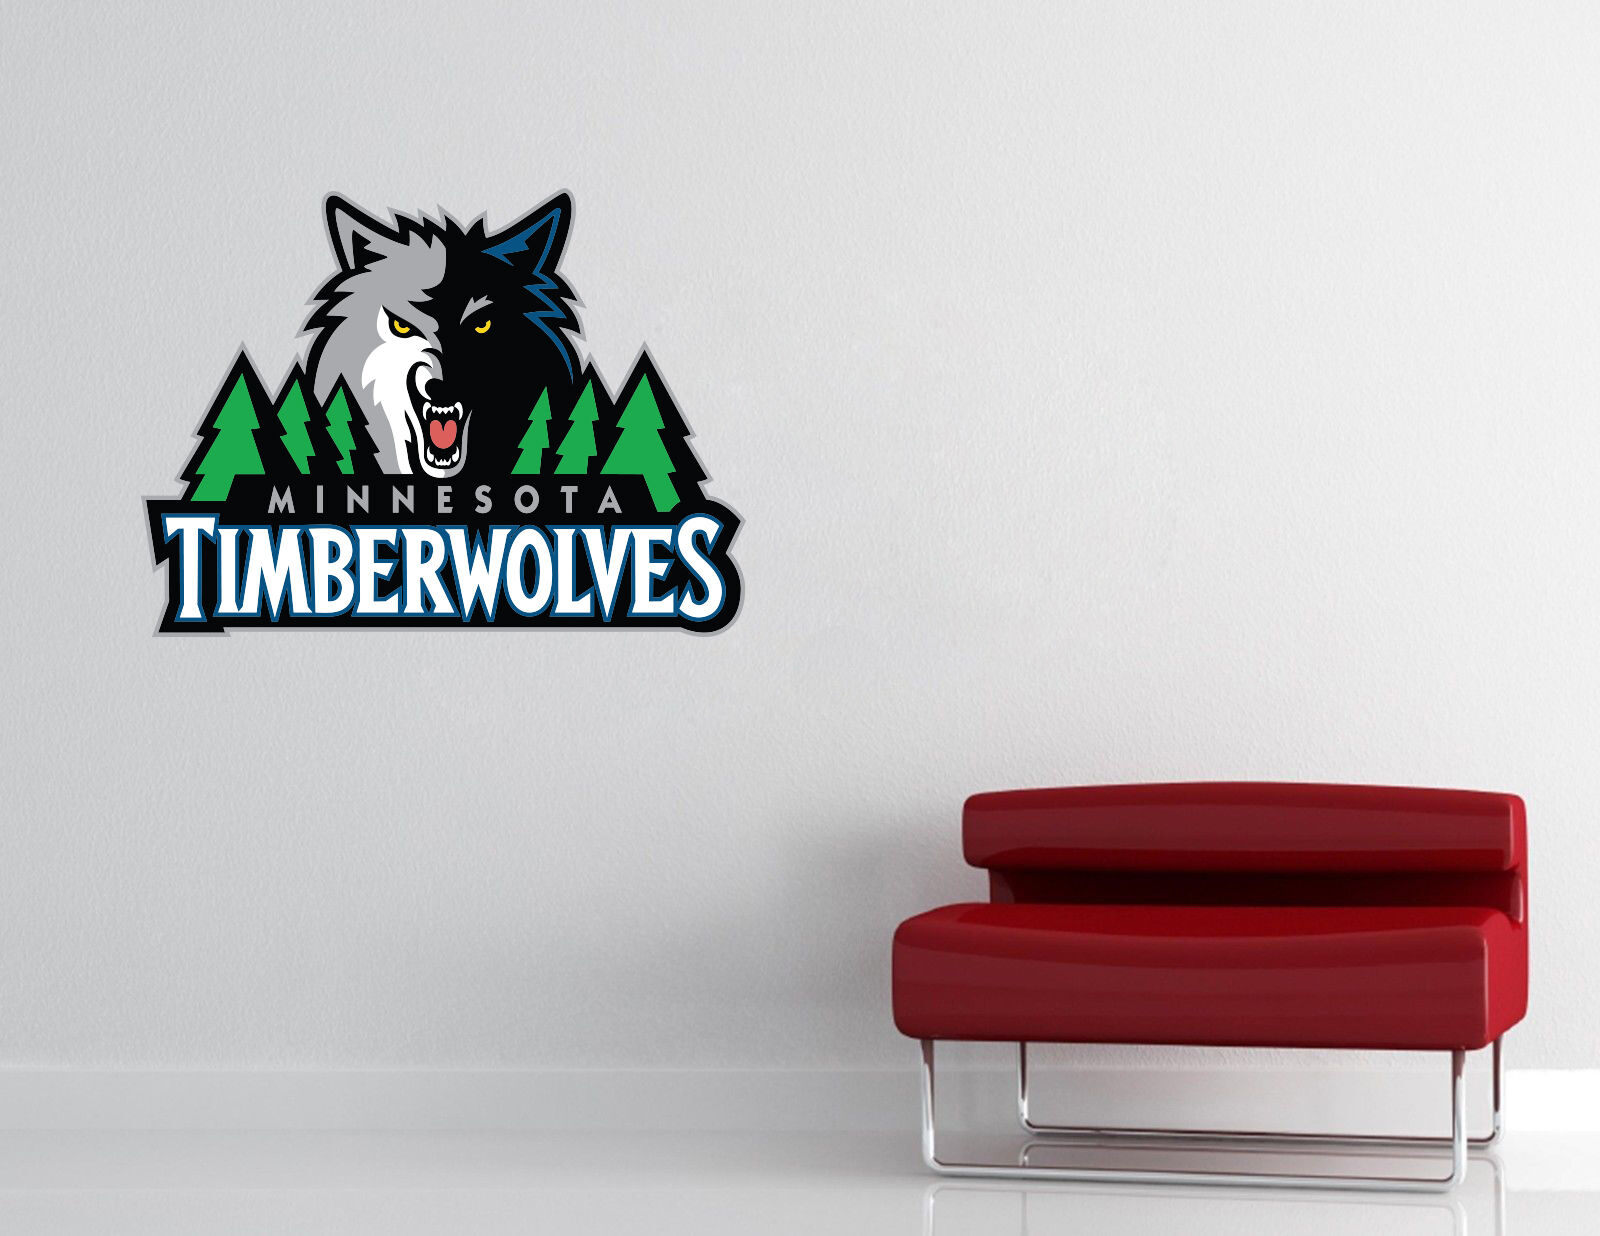 Minnesota Timberwolves NBA Wall Decal Vinyl Sticker Decor EXTRA LARGE L237